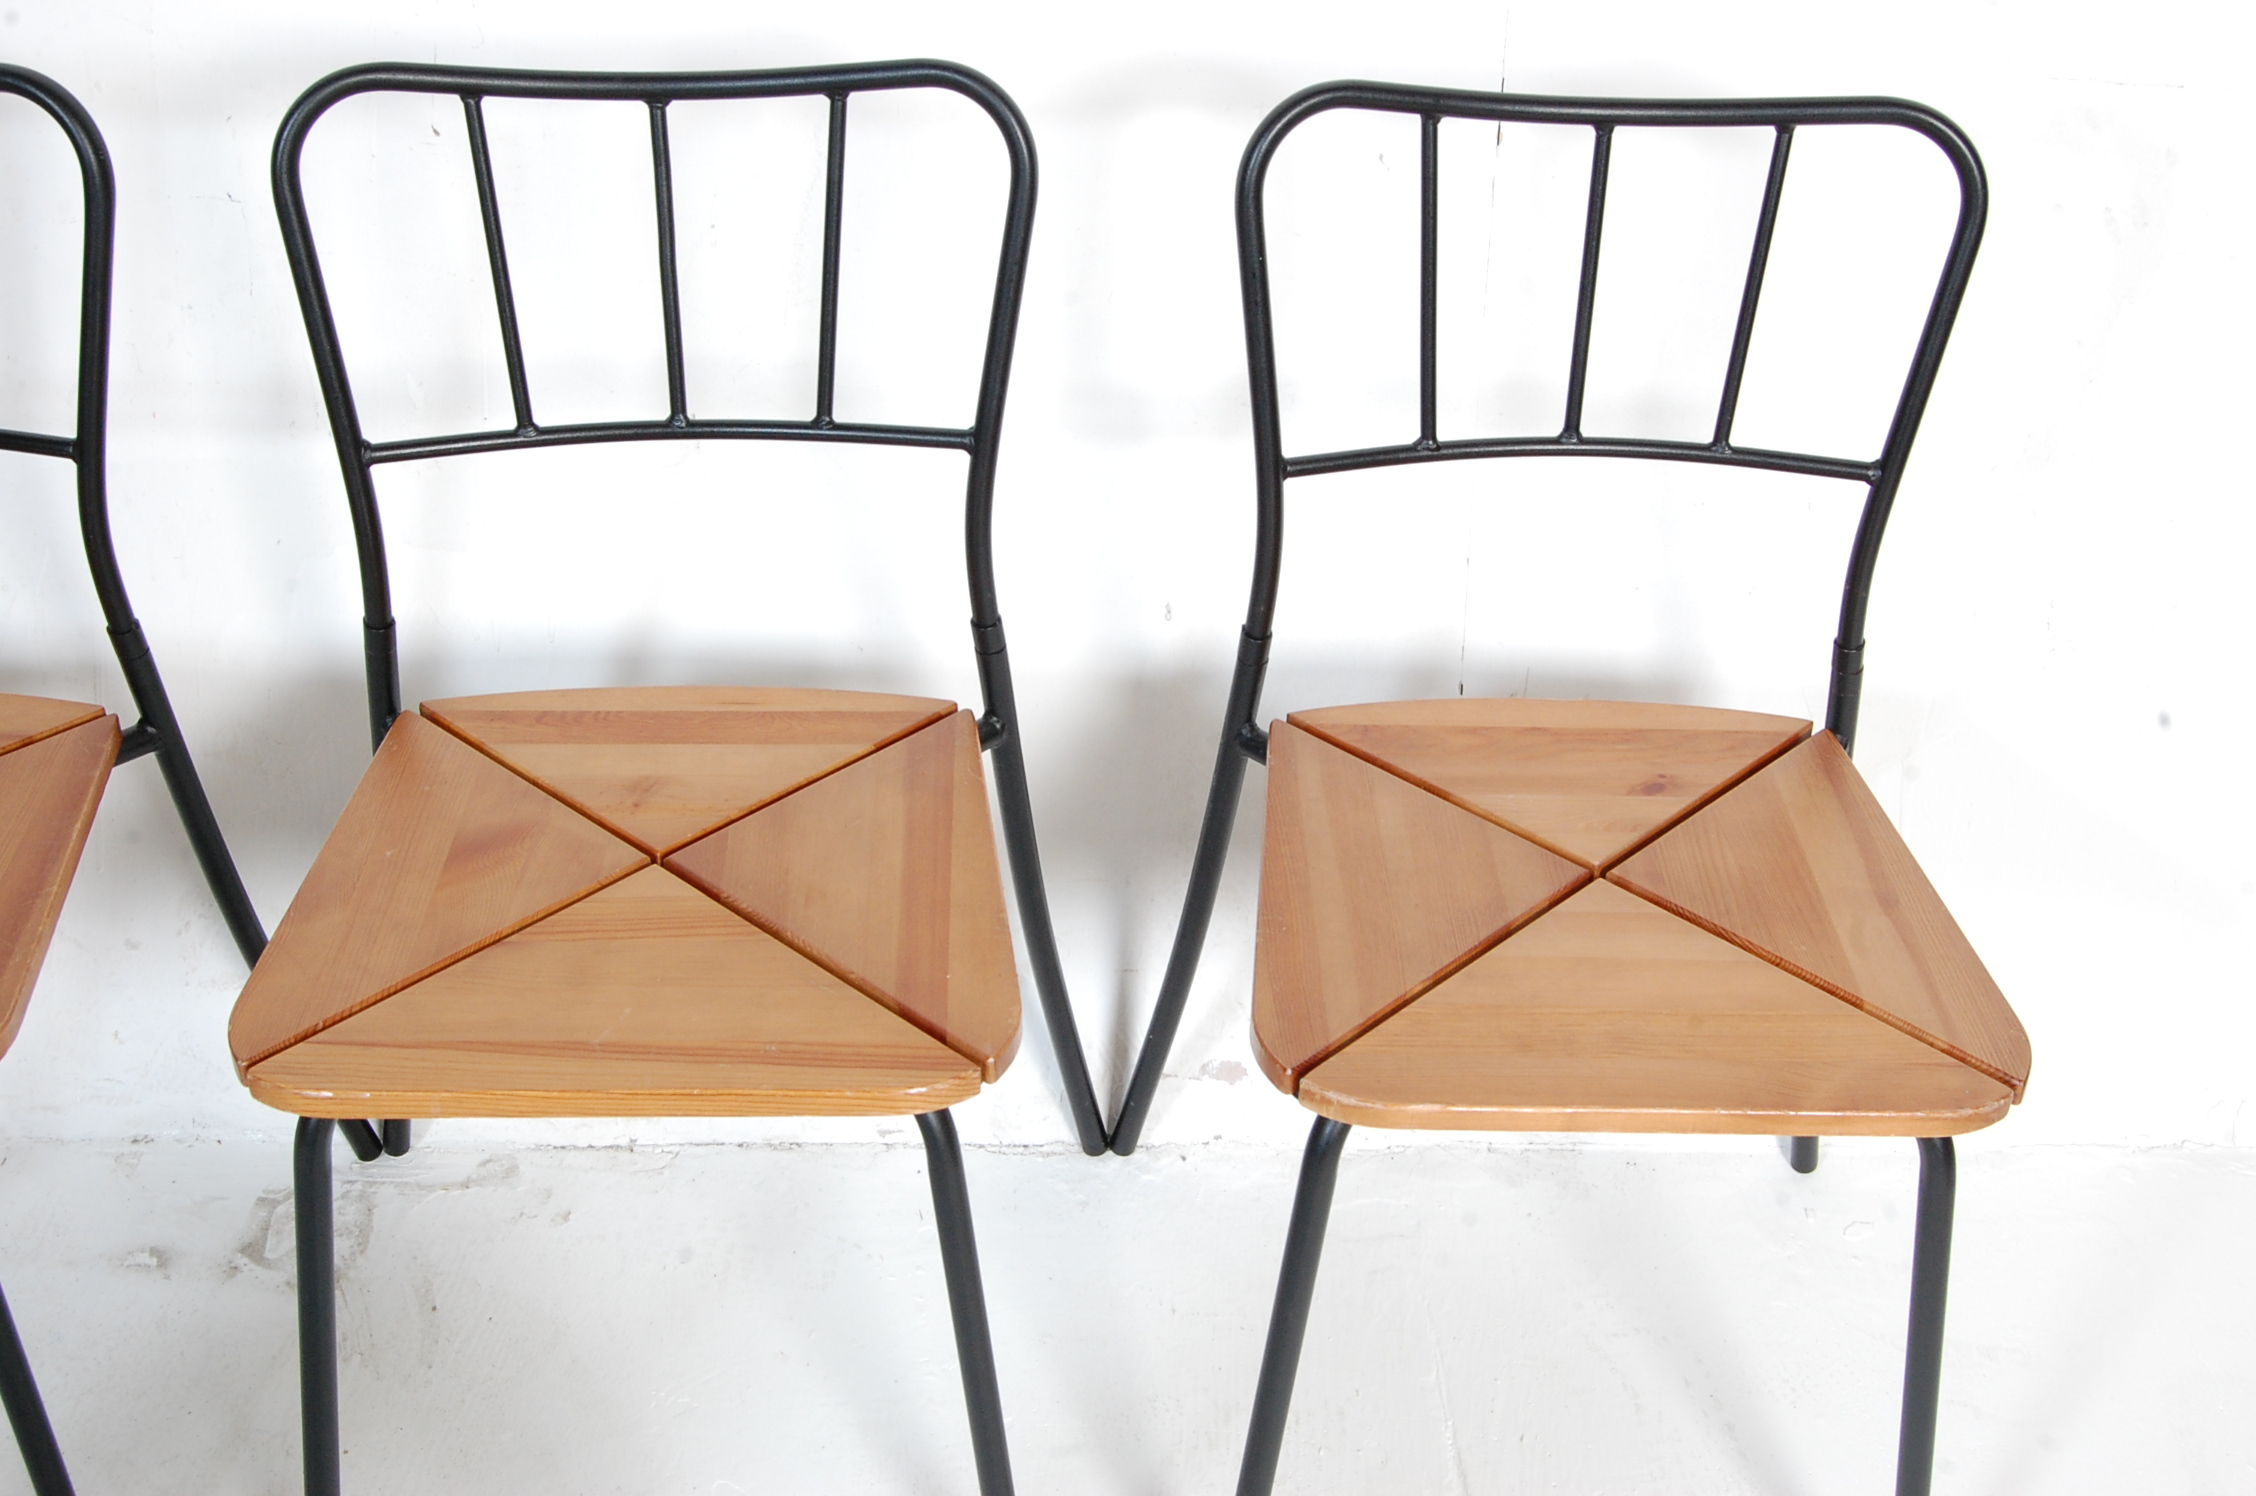 SET OF FOUR CONTEMPORARY INDUSTRIAL DINING CHAIRS - Image 4 of 7